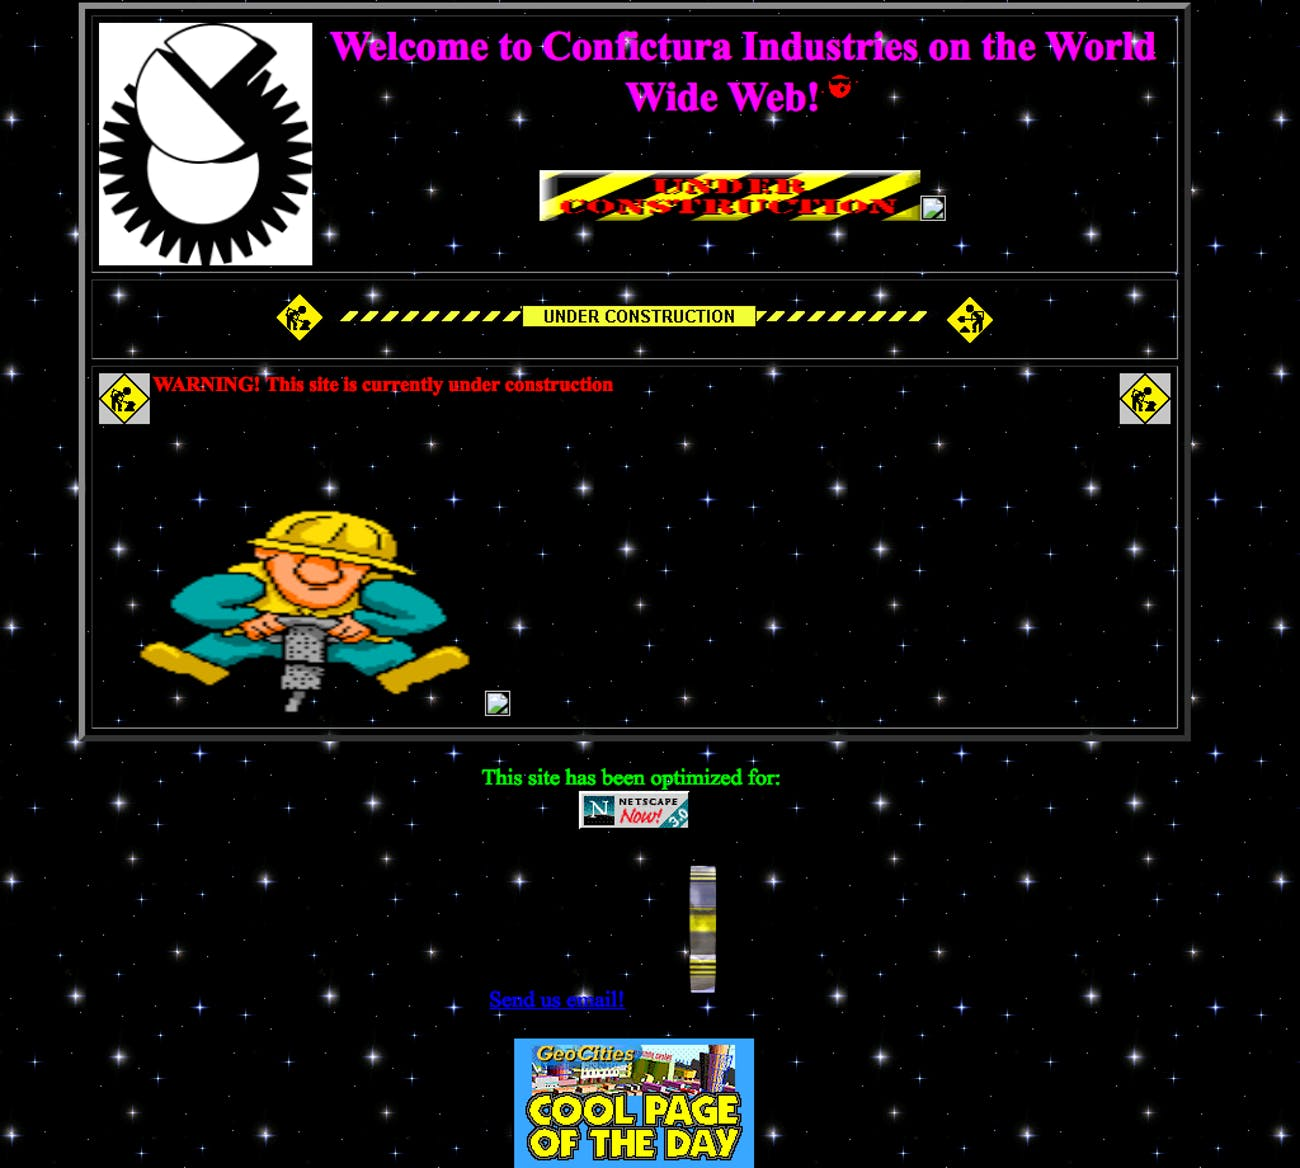 Mr Robot Qr Code Leads To Strange Website From 1996 Inverse Digital Visitor Counter The Site Itself Says Its Still Under Construction But Mentions That Been Optimized For New In 96 Netscape Version 30 And Has A